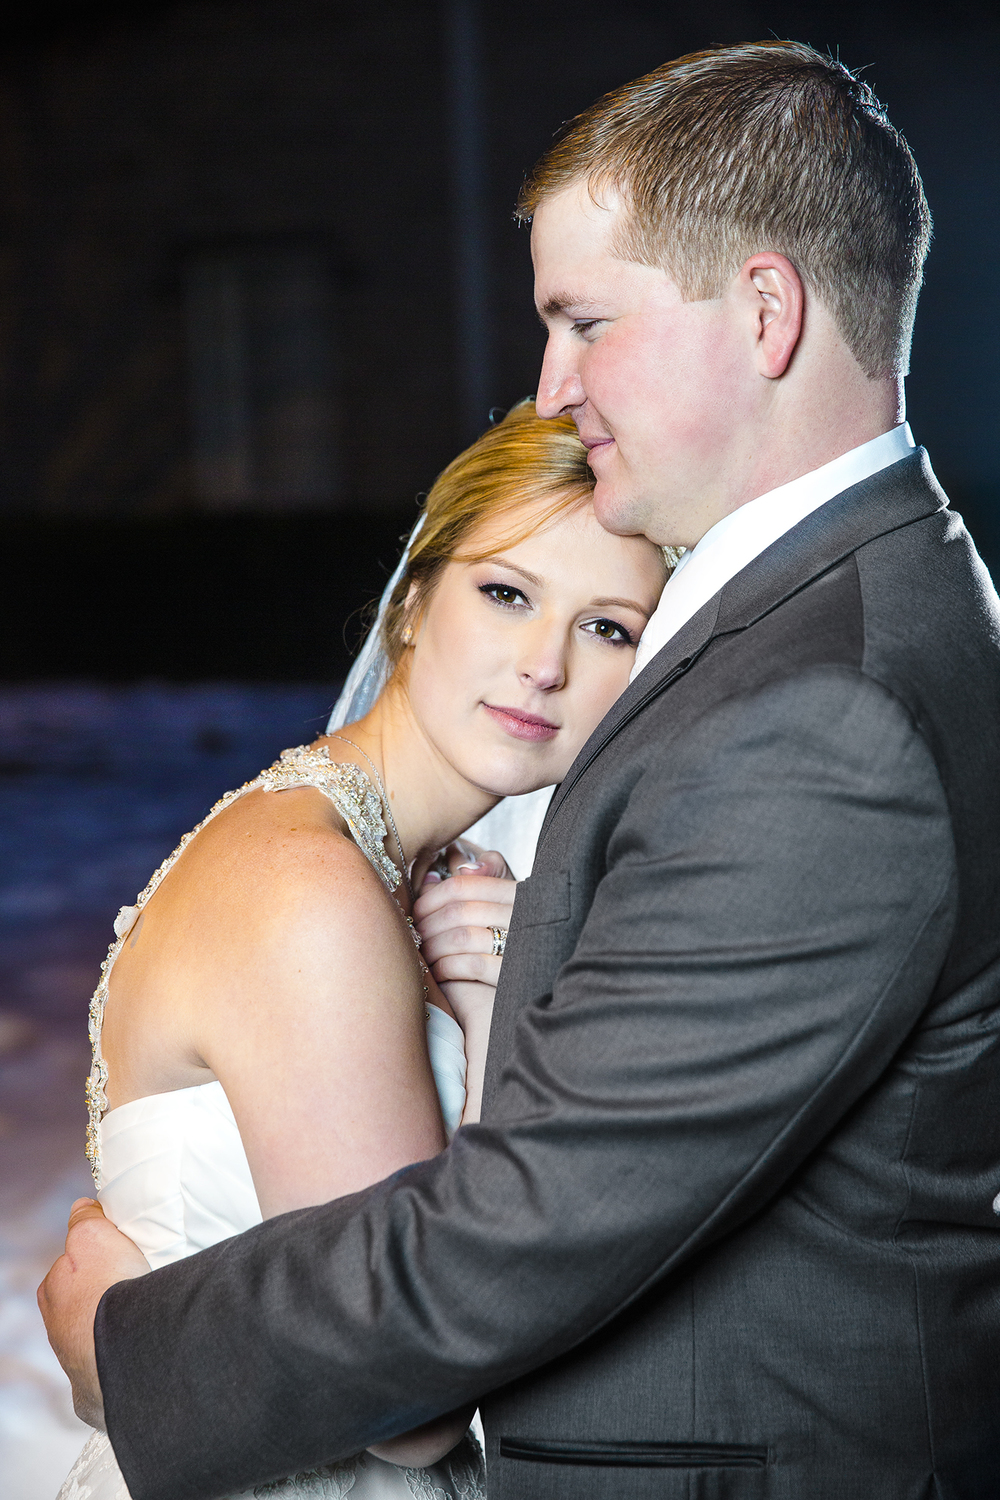 romantic, sweet, cold outside, bride and groom, wedding portraits, keep her warm